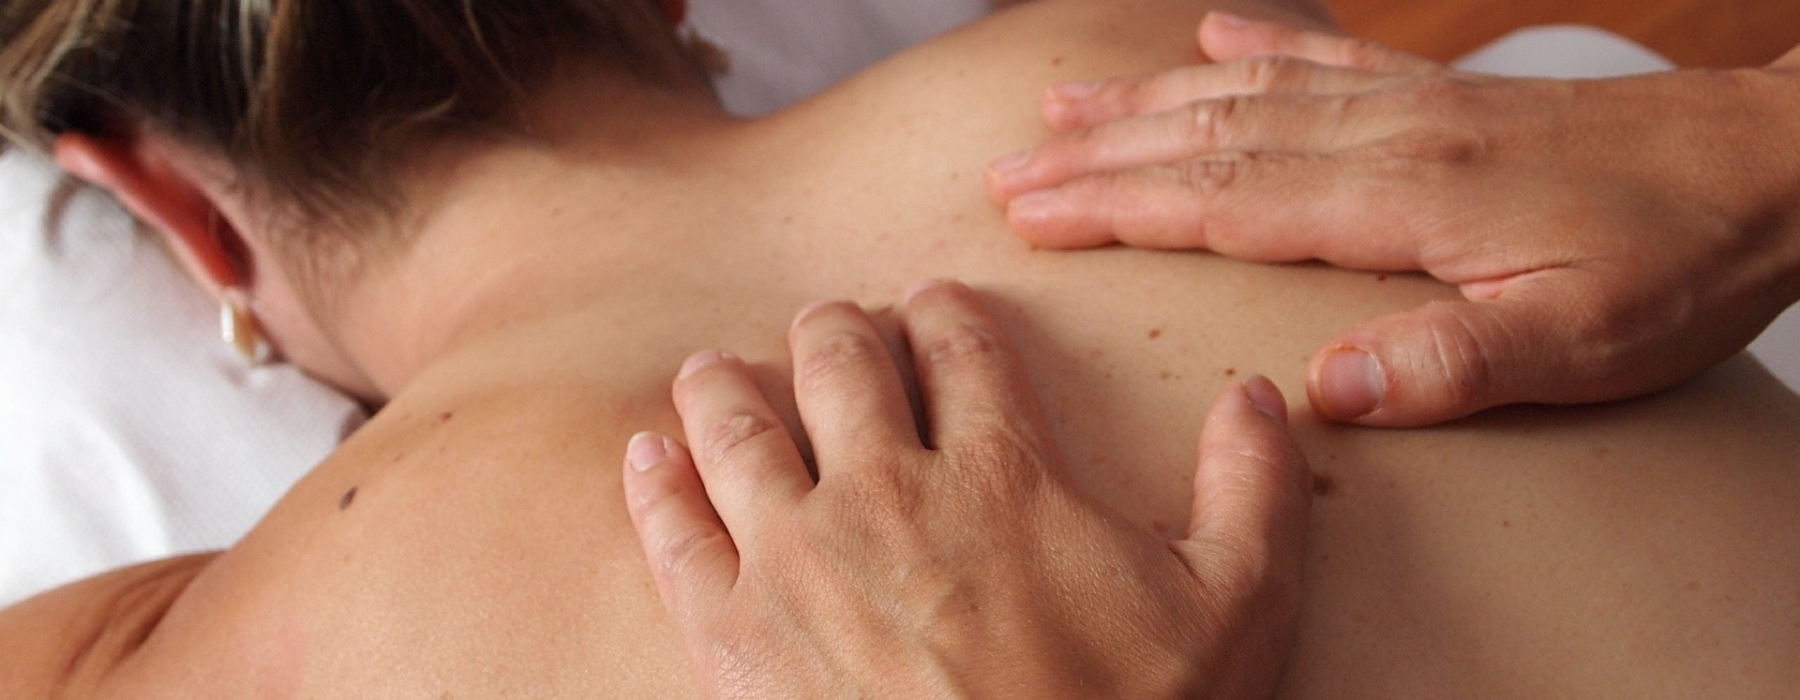 Physiotherapie Ludwigsfelde massage